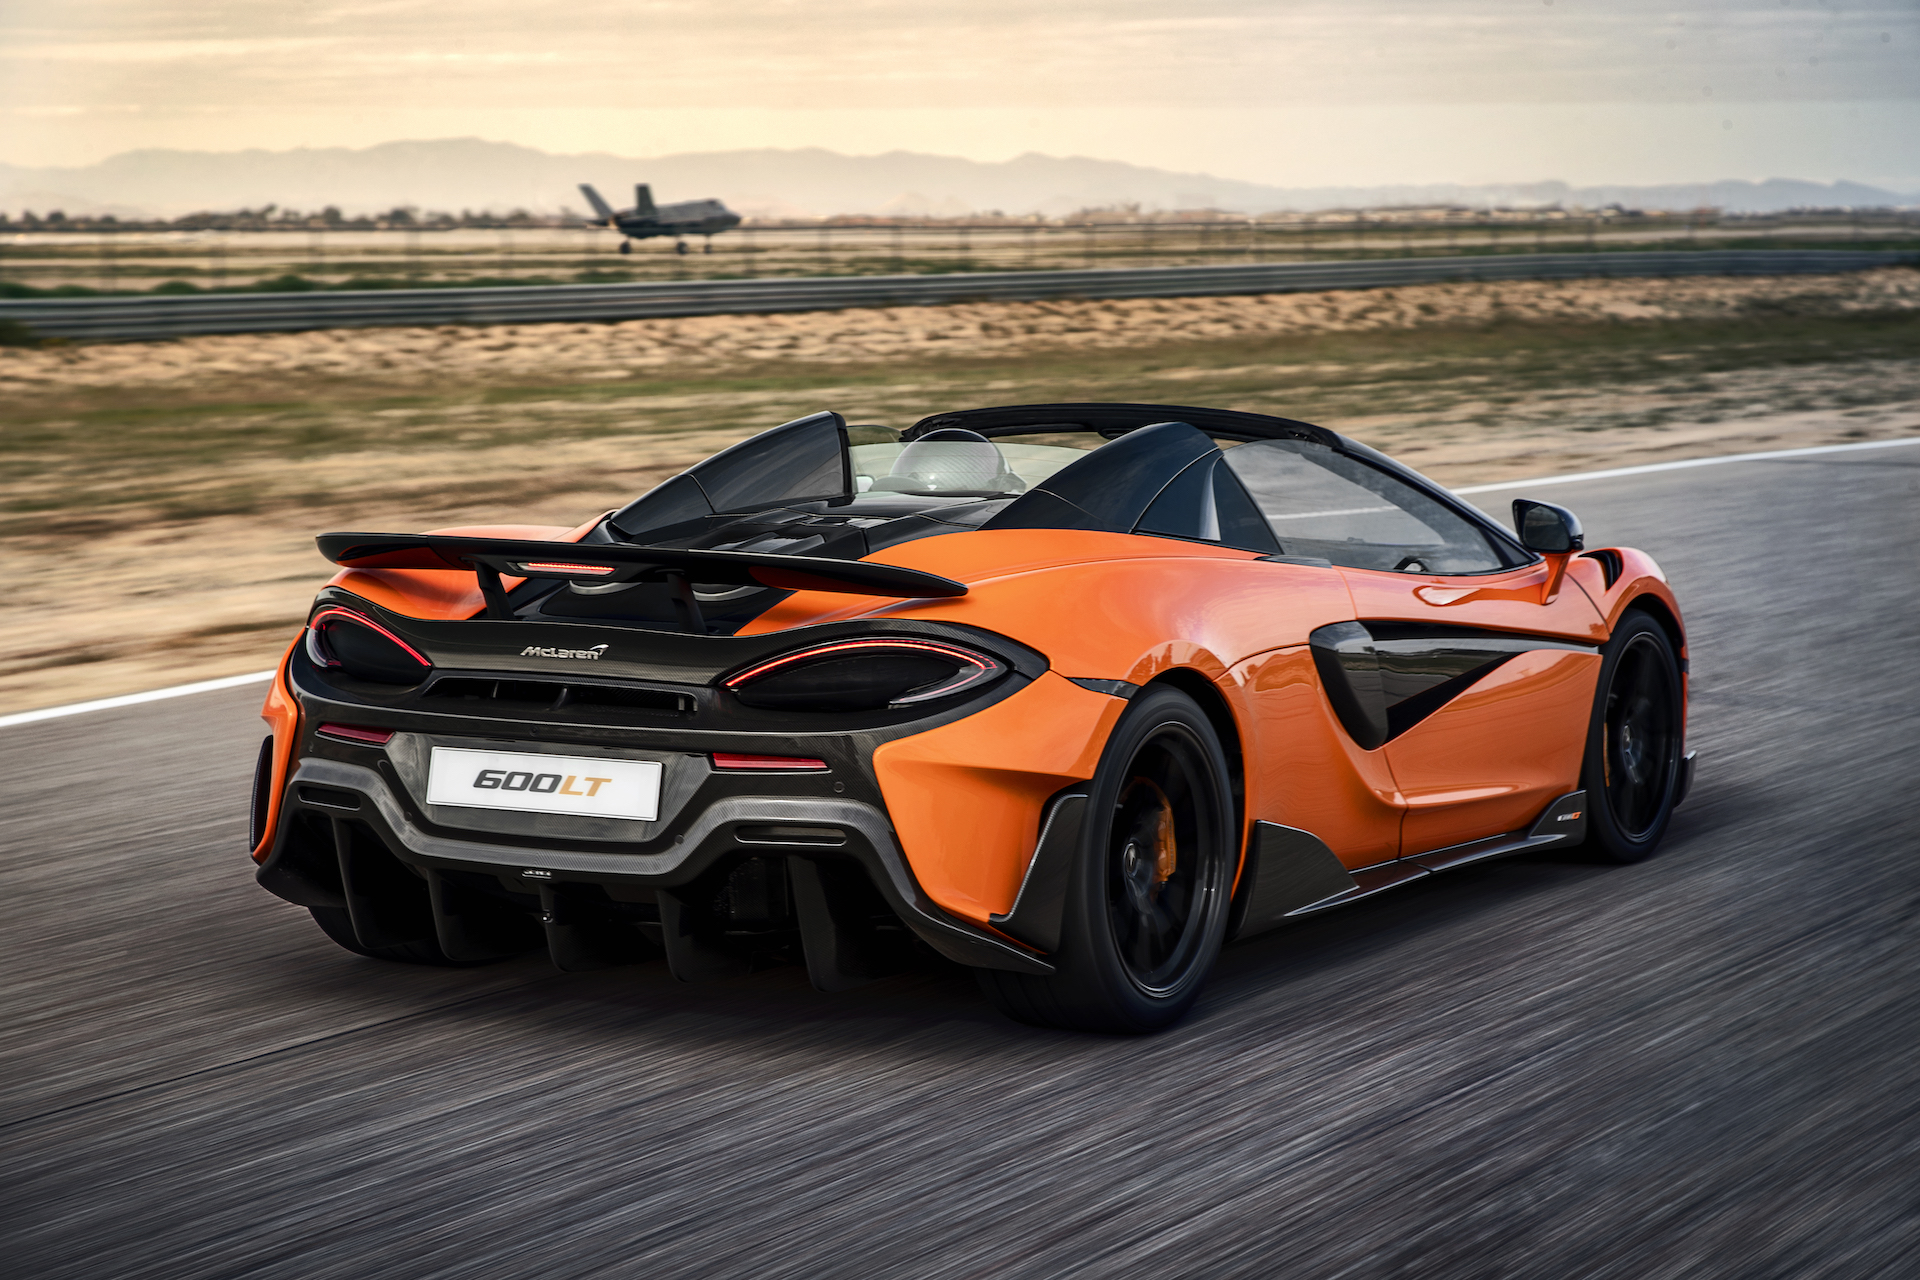 2020 McLaren 600LT Spider Color Myan Orange Rear Three Quarter Wallpaper 2